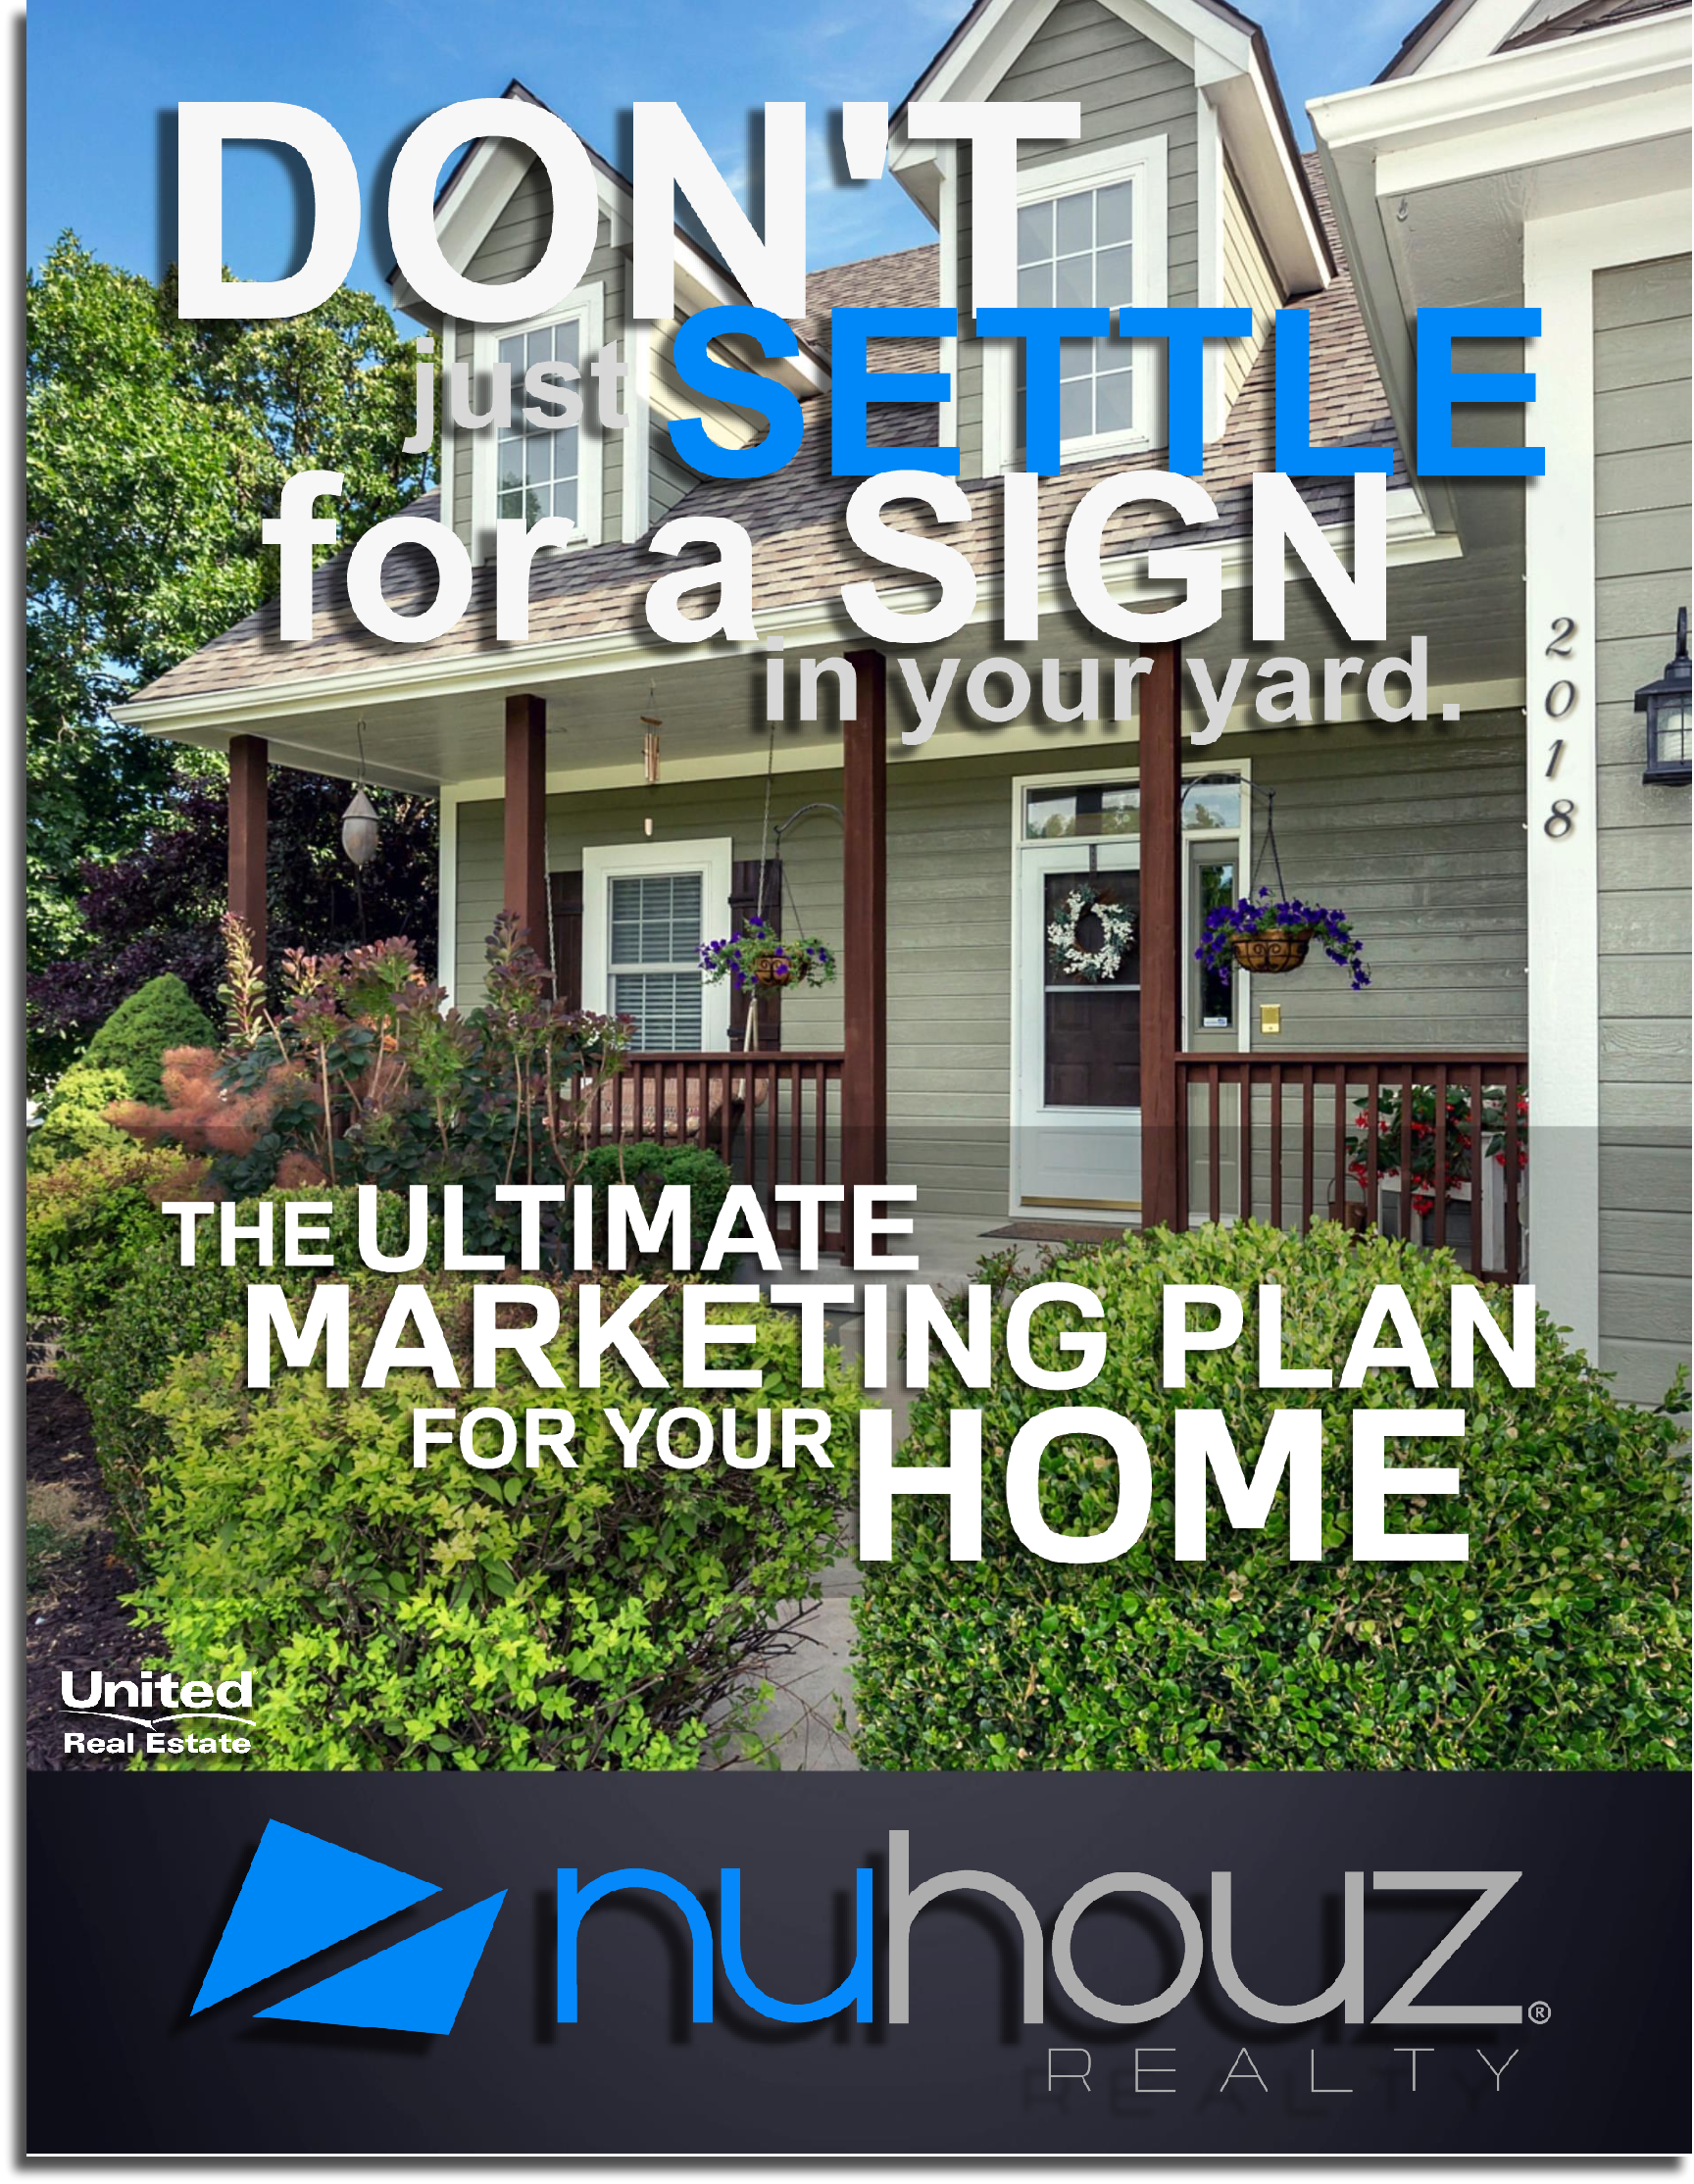 nuhouz realty marketing plan for my home